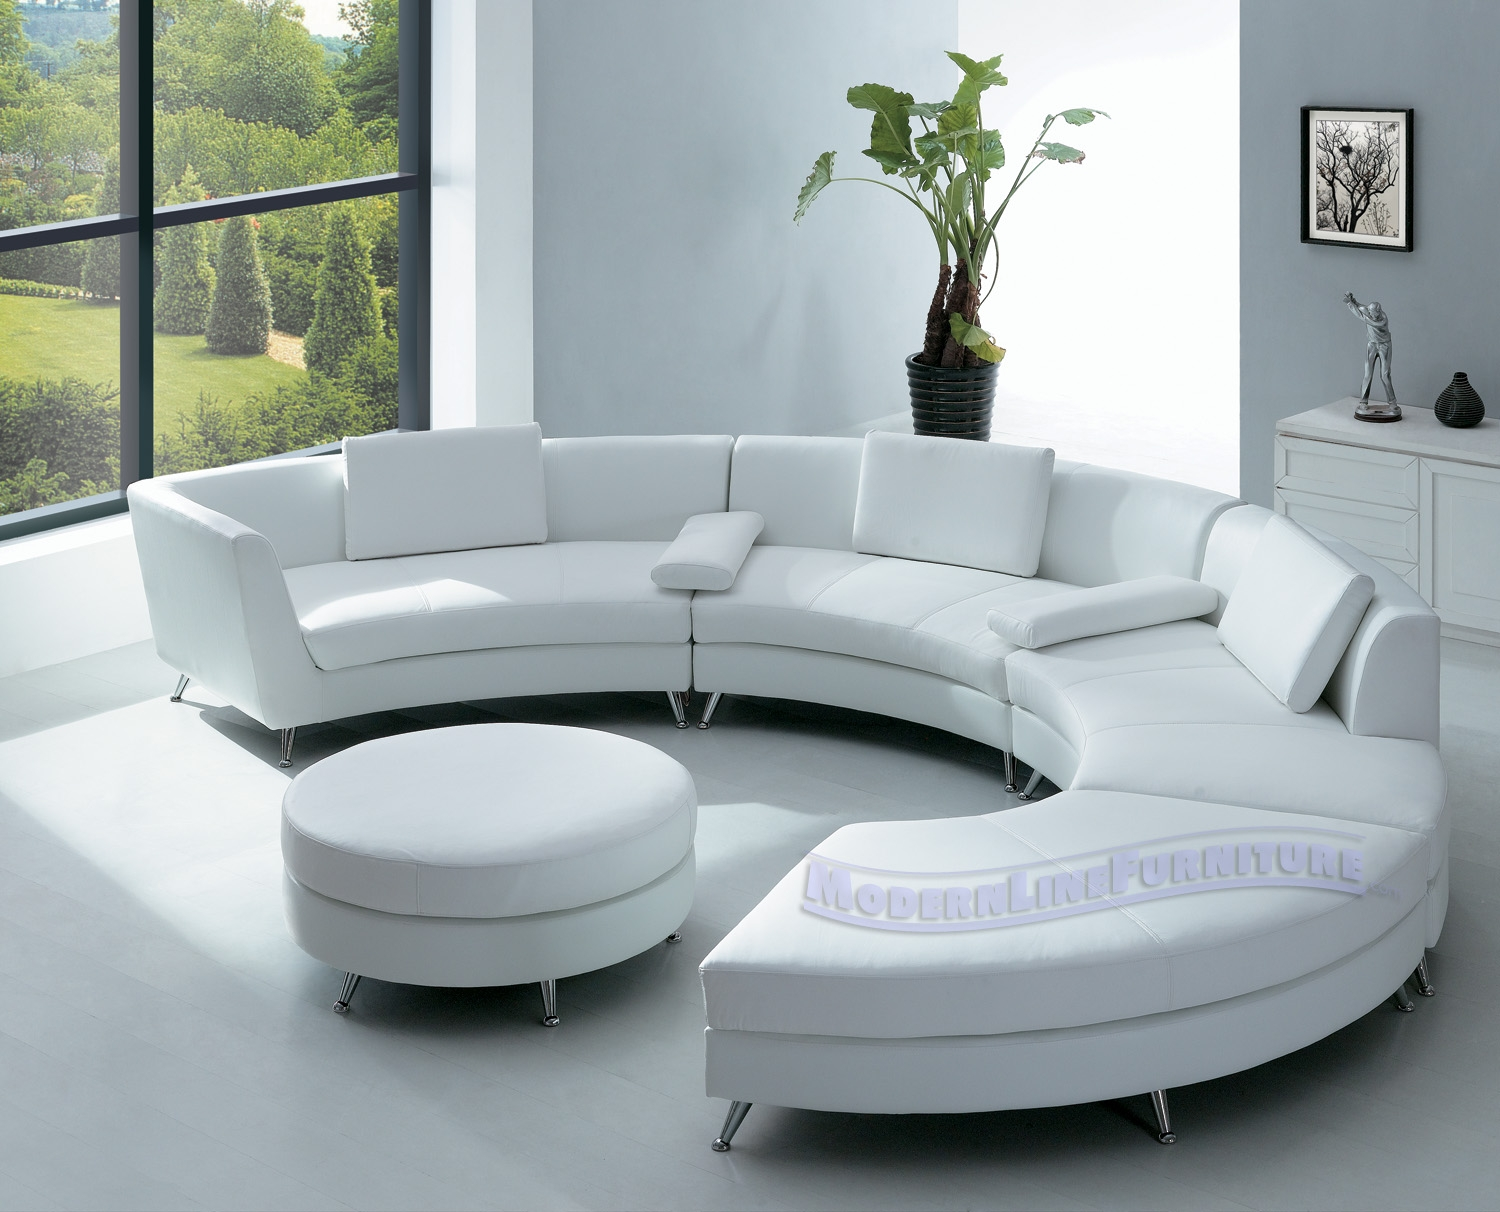 Best 20 Round Sofa Ideas On Pinterest With Regard To Circular Sofa Chairs (Image 1 of 15)